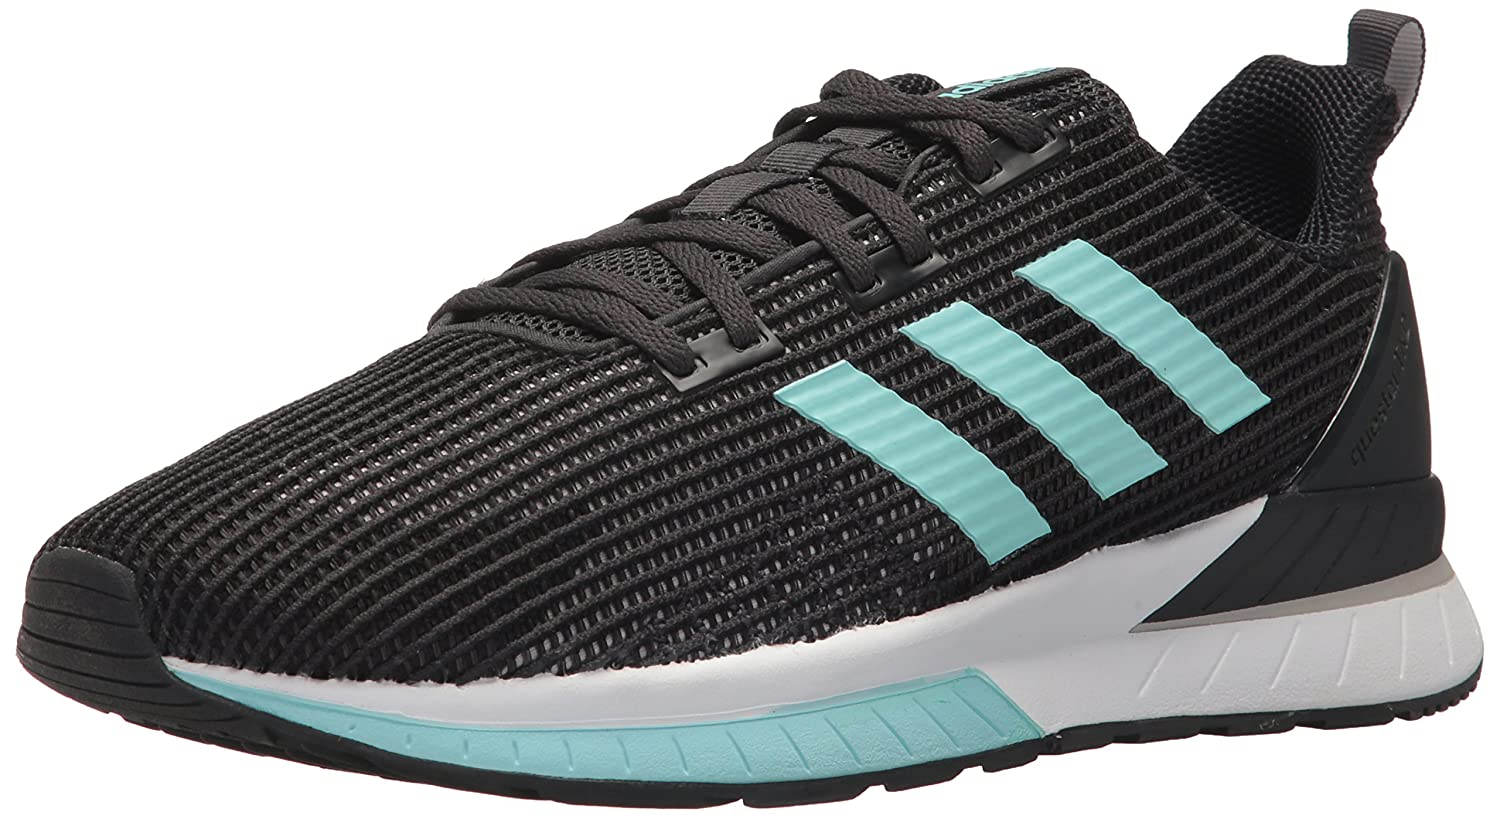 adidas Women's Questar Tnd W Running Shoe B071GRWW4D 10.5 B(M) US|Carbon/Clear Aqua/Black